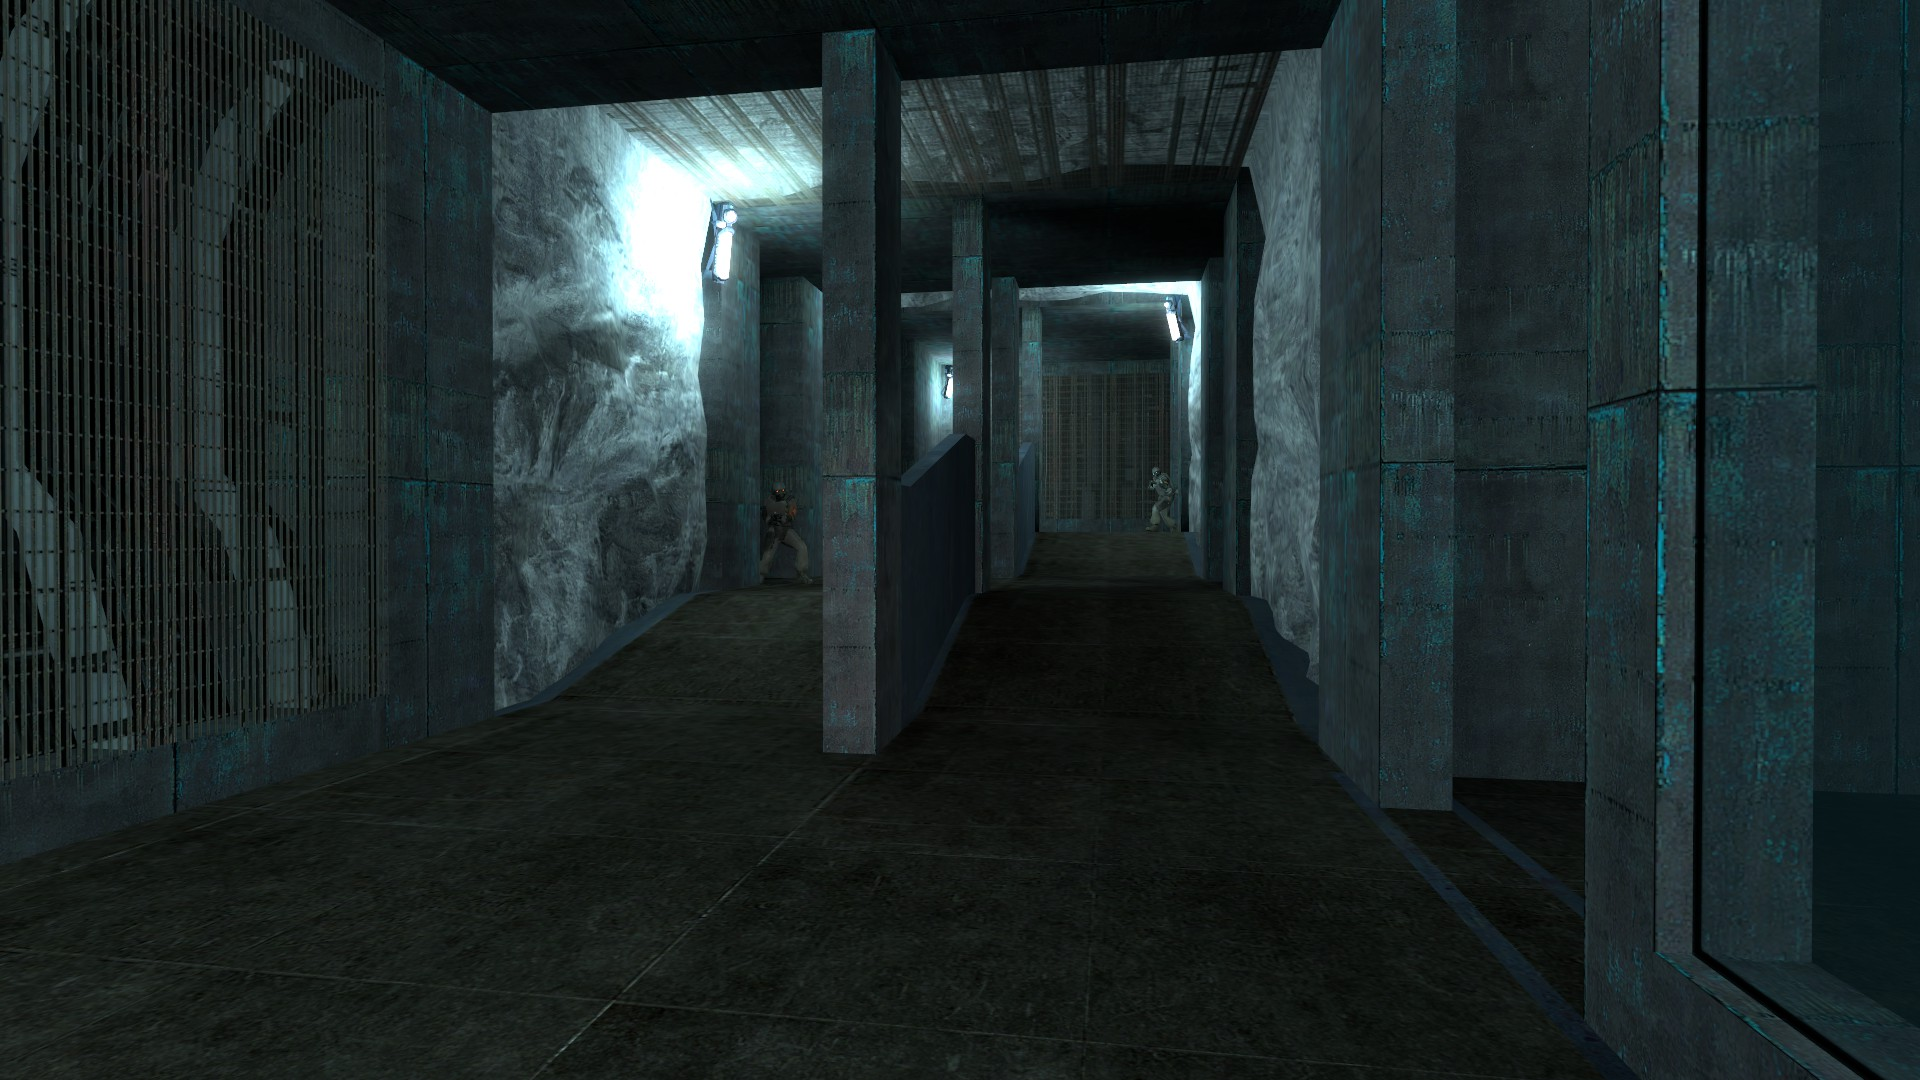 Half-life 2: Episode 3 Proof of Concept by Gazz, TheBeach